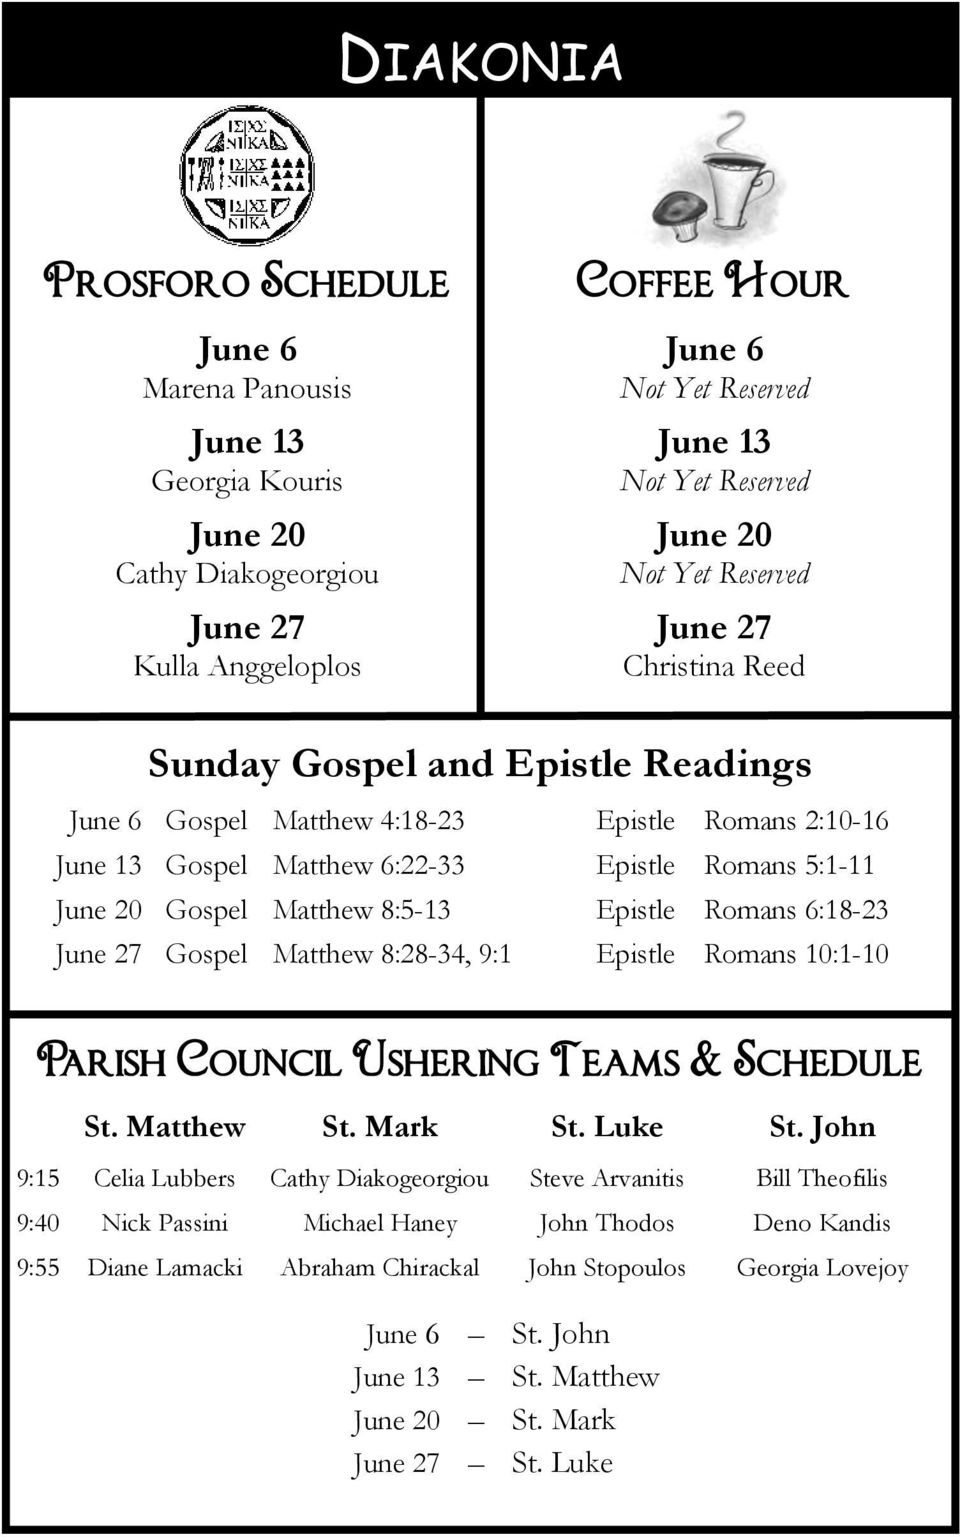 8:5-13 Epistle Romans 6:18-23 June 27 Gospel Matthew 8:28-34, 9:1 Epistle Romans 10:1-10 Parish Council Ushering Teams & Schedule St. Matthew St. Mark St. Luke St.